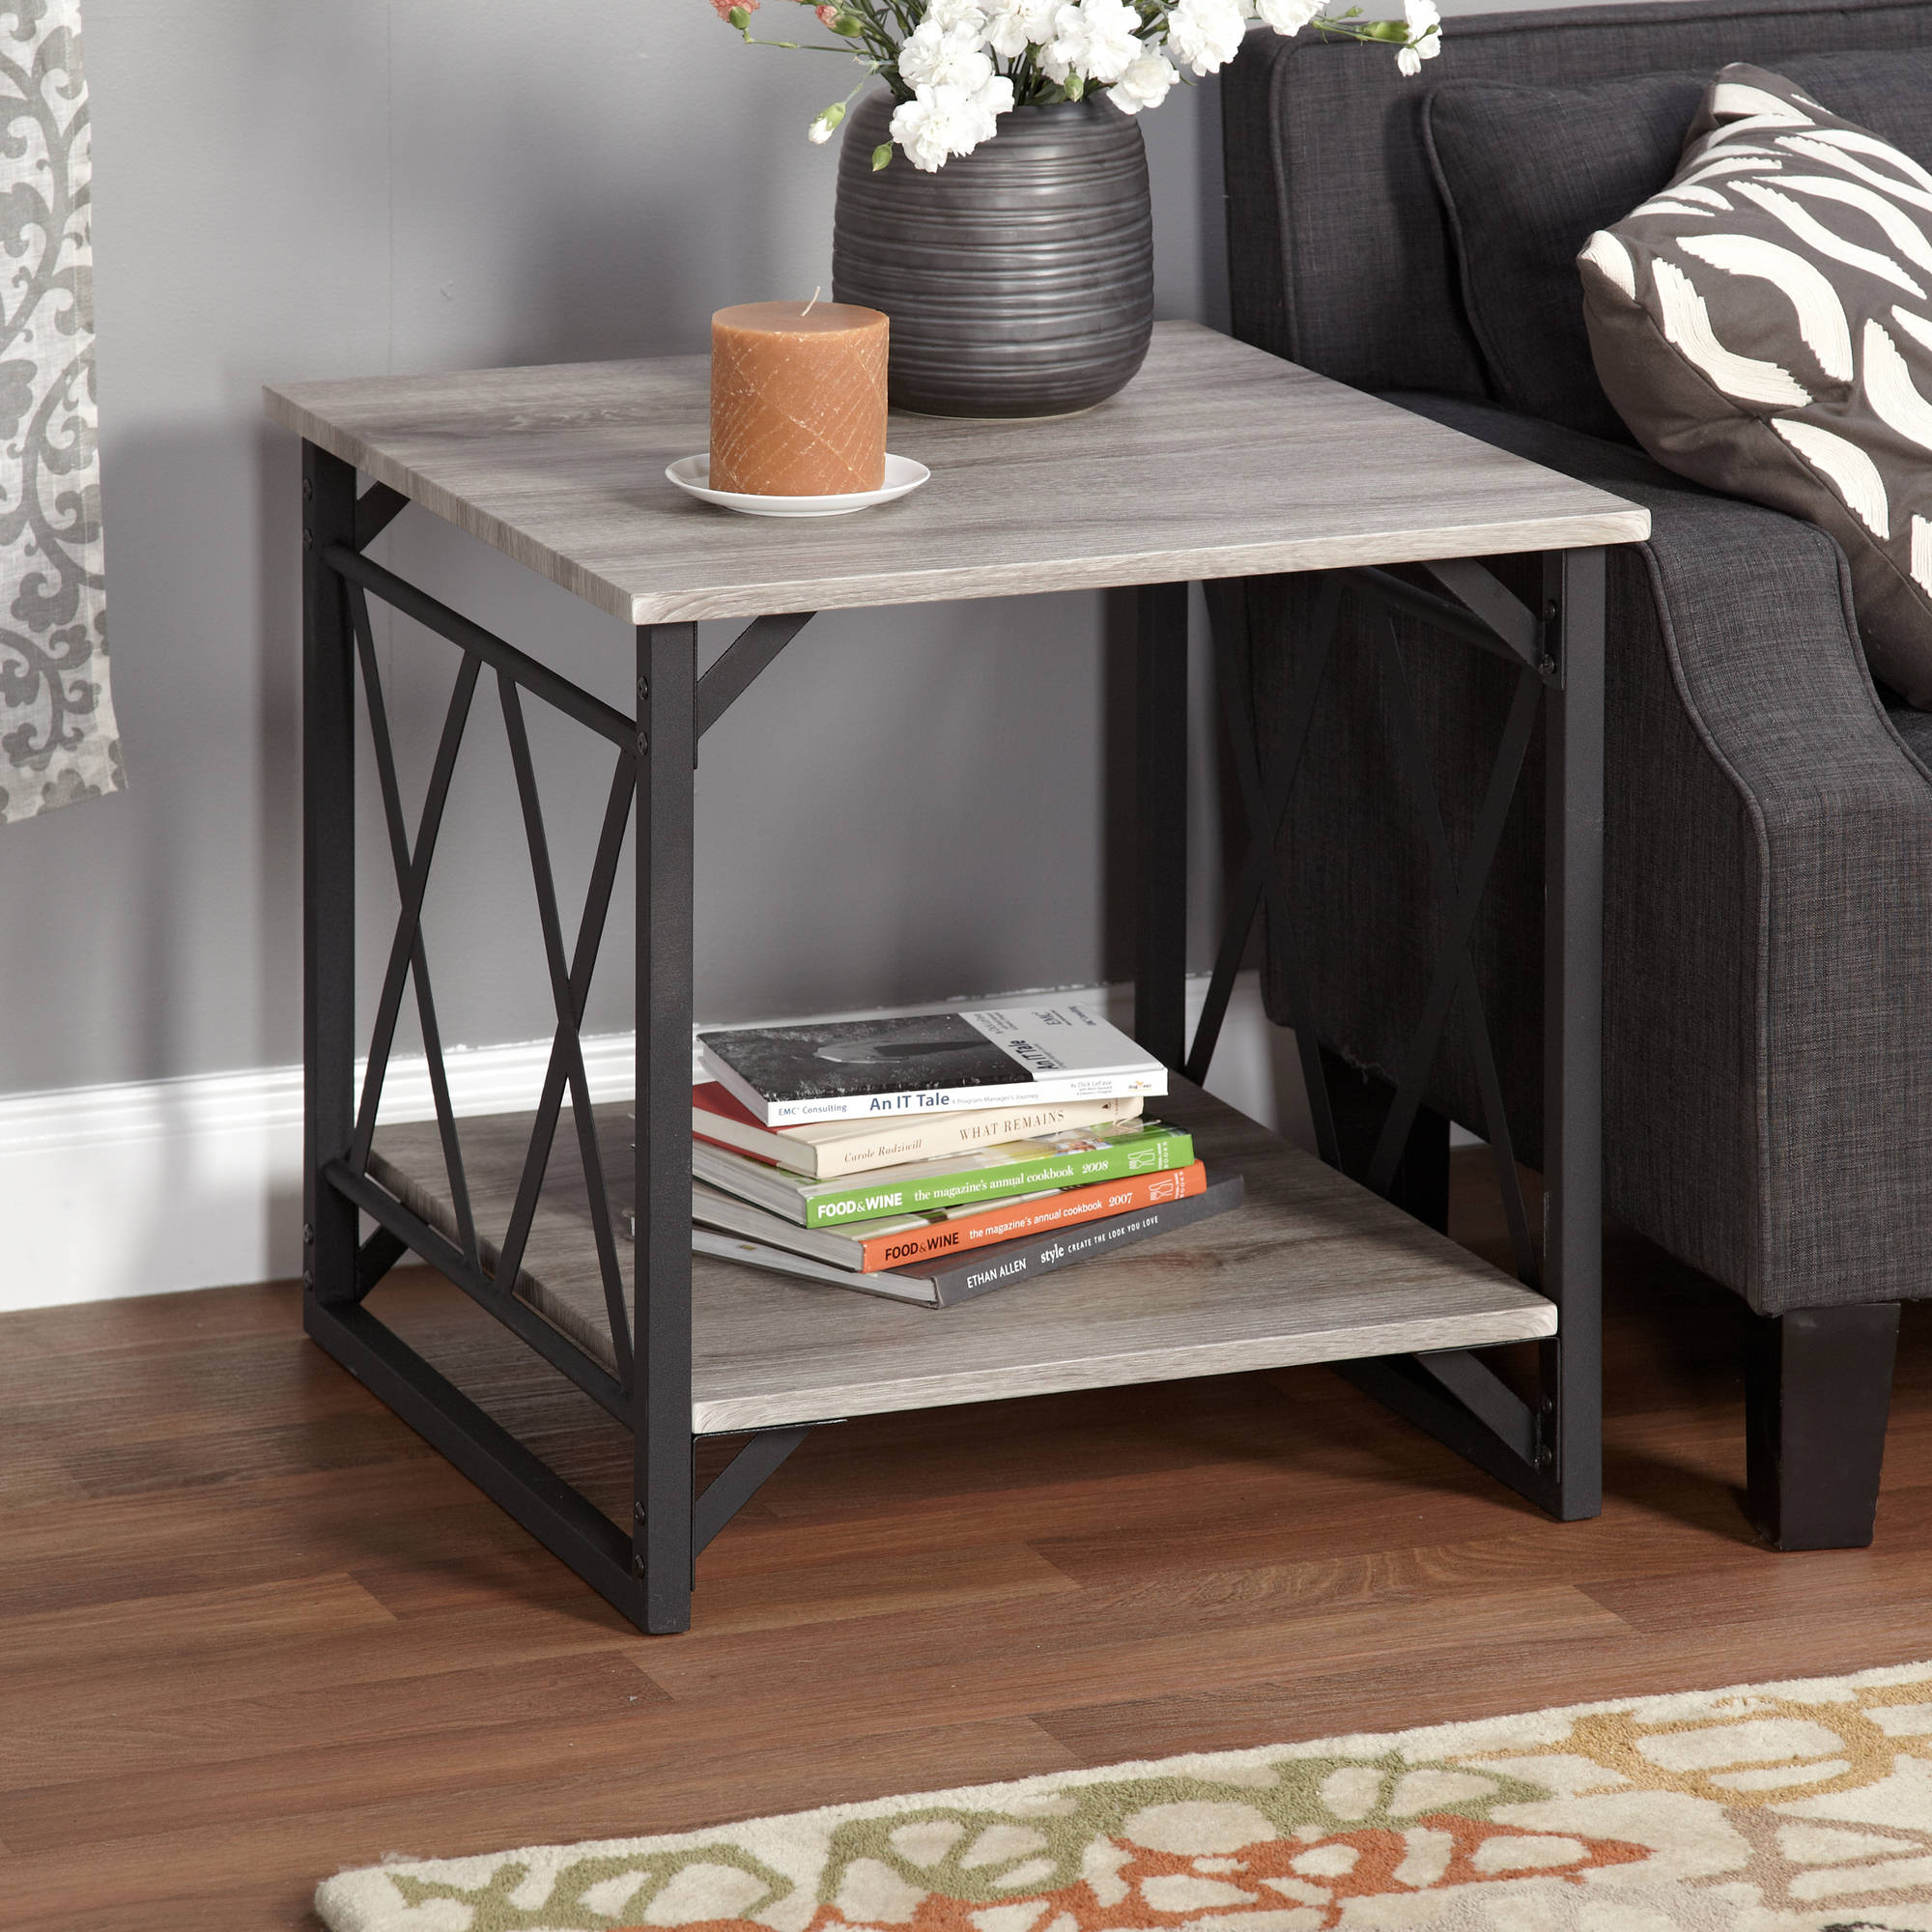 Living Room FurnitureWalmartcom